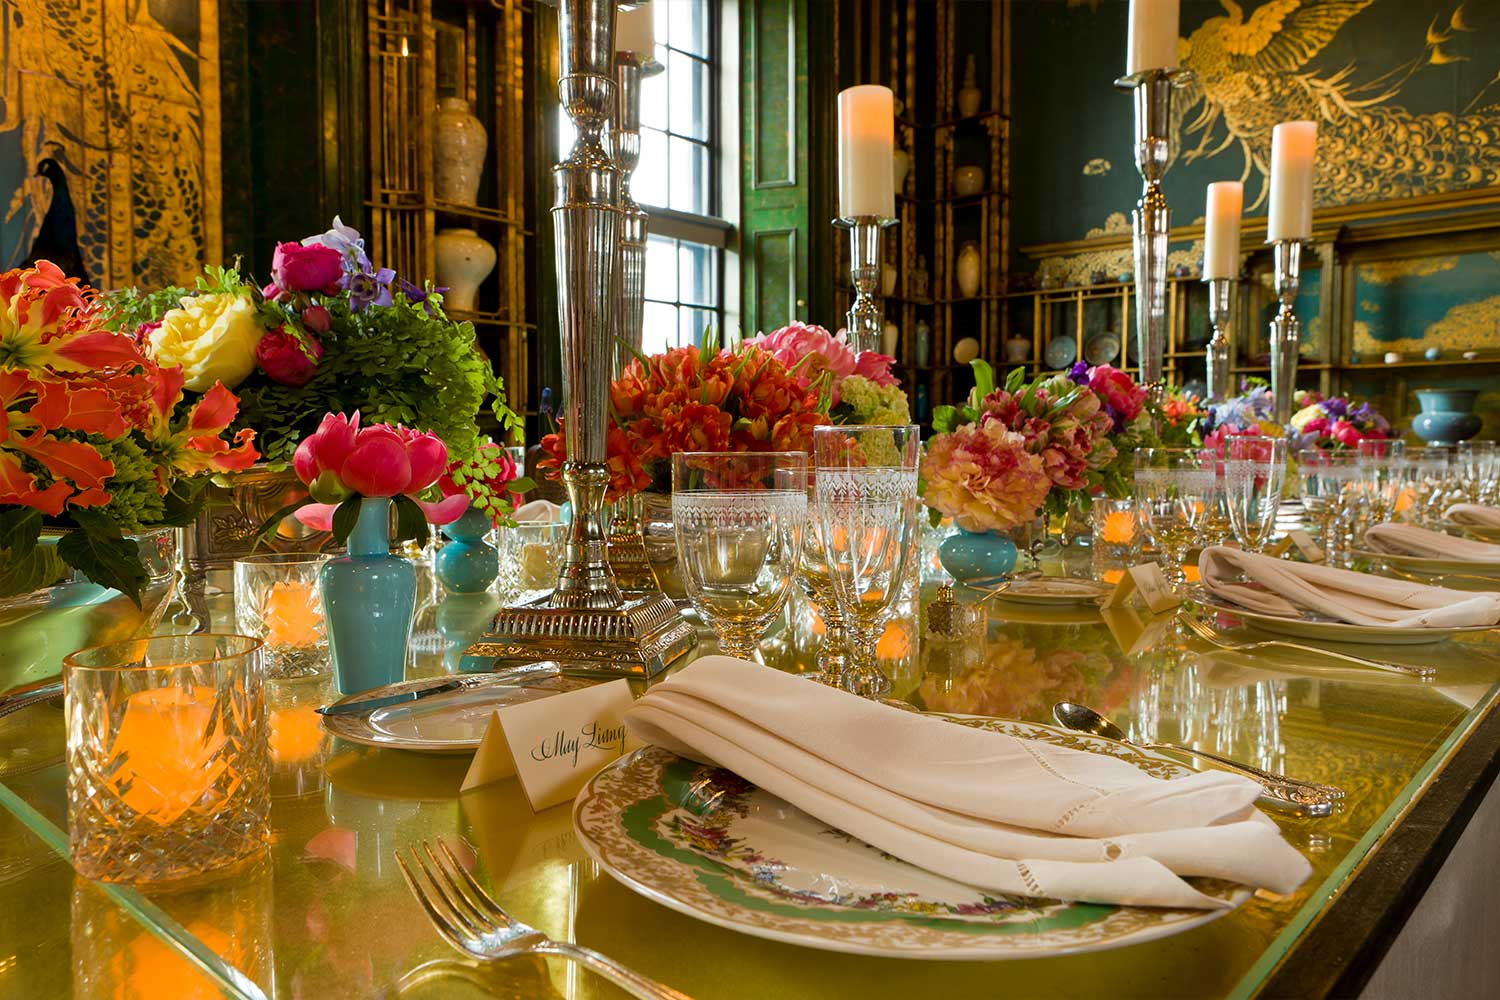 A lavish and colorful table set for an elegant party.